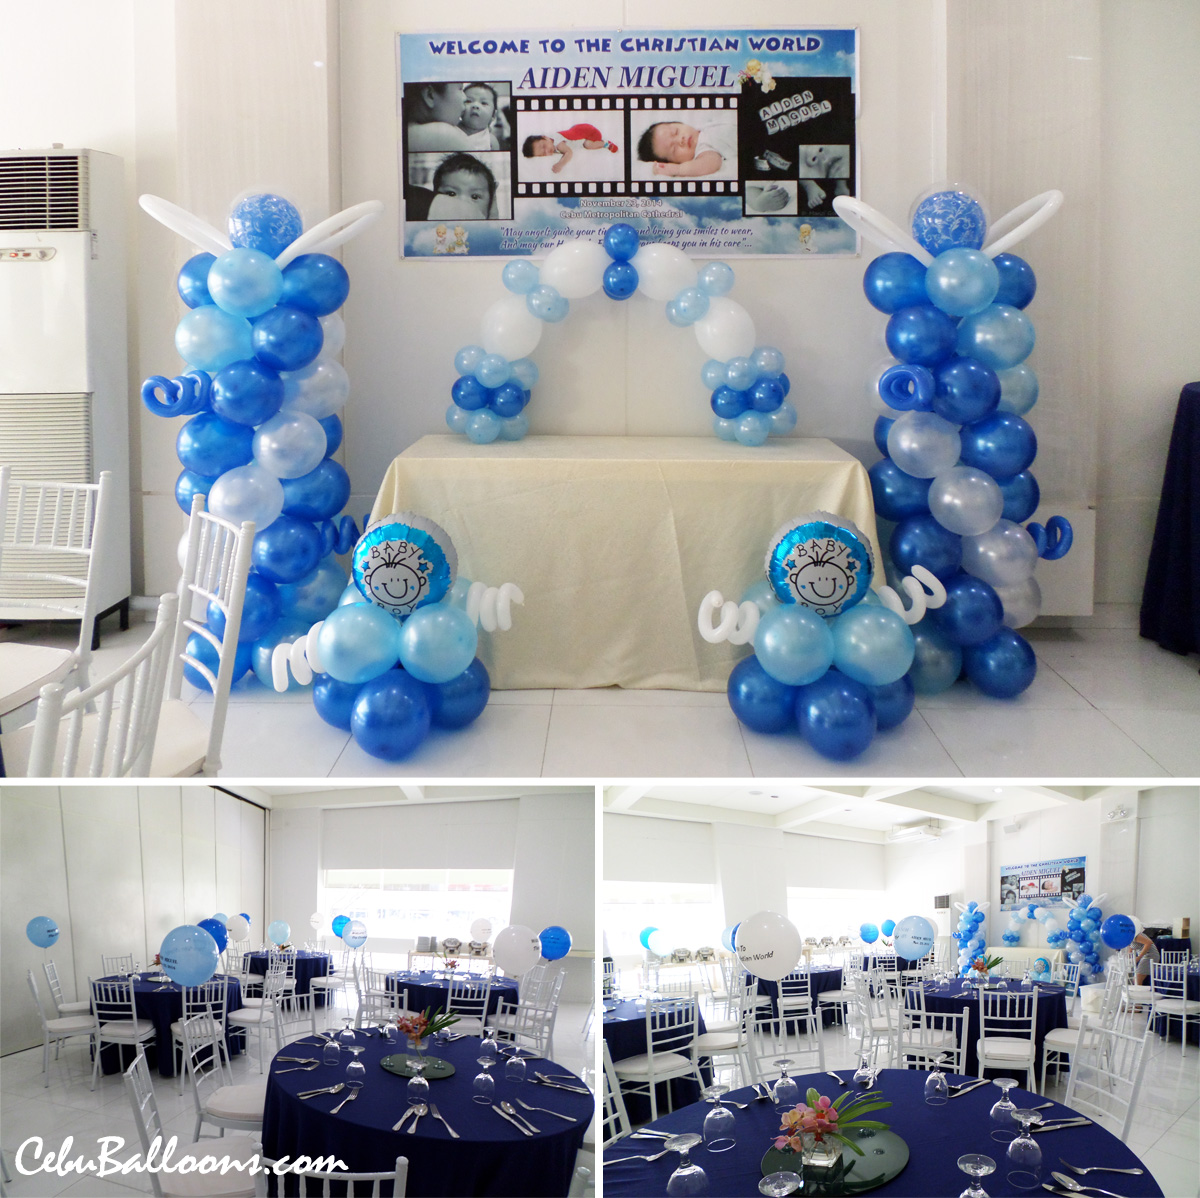 Baptism decoration for aiden miguel at laguna garden cafe cebu balloons and party supplies - Decorations for a baptism ...